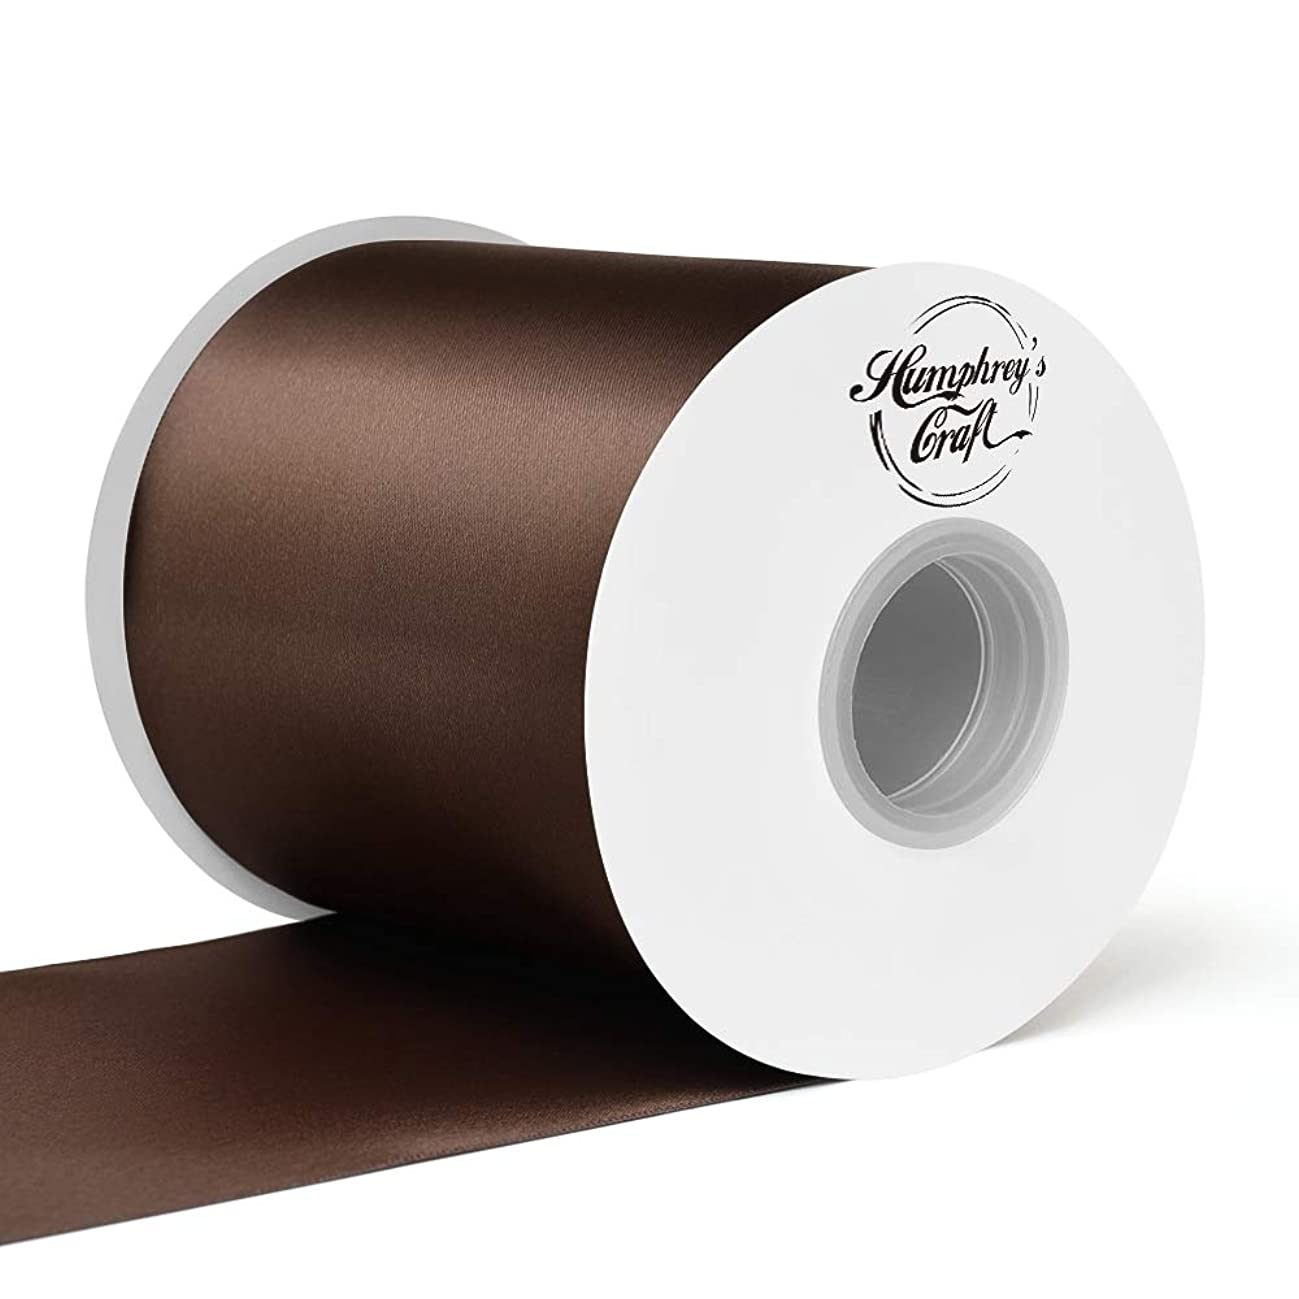 Humphrey's Craft 4 inch Double Face Solid Satin Ribbon 100% Polyester Ribbon Roll -25 Yard (Brown)